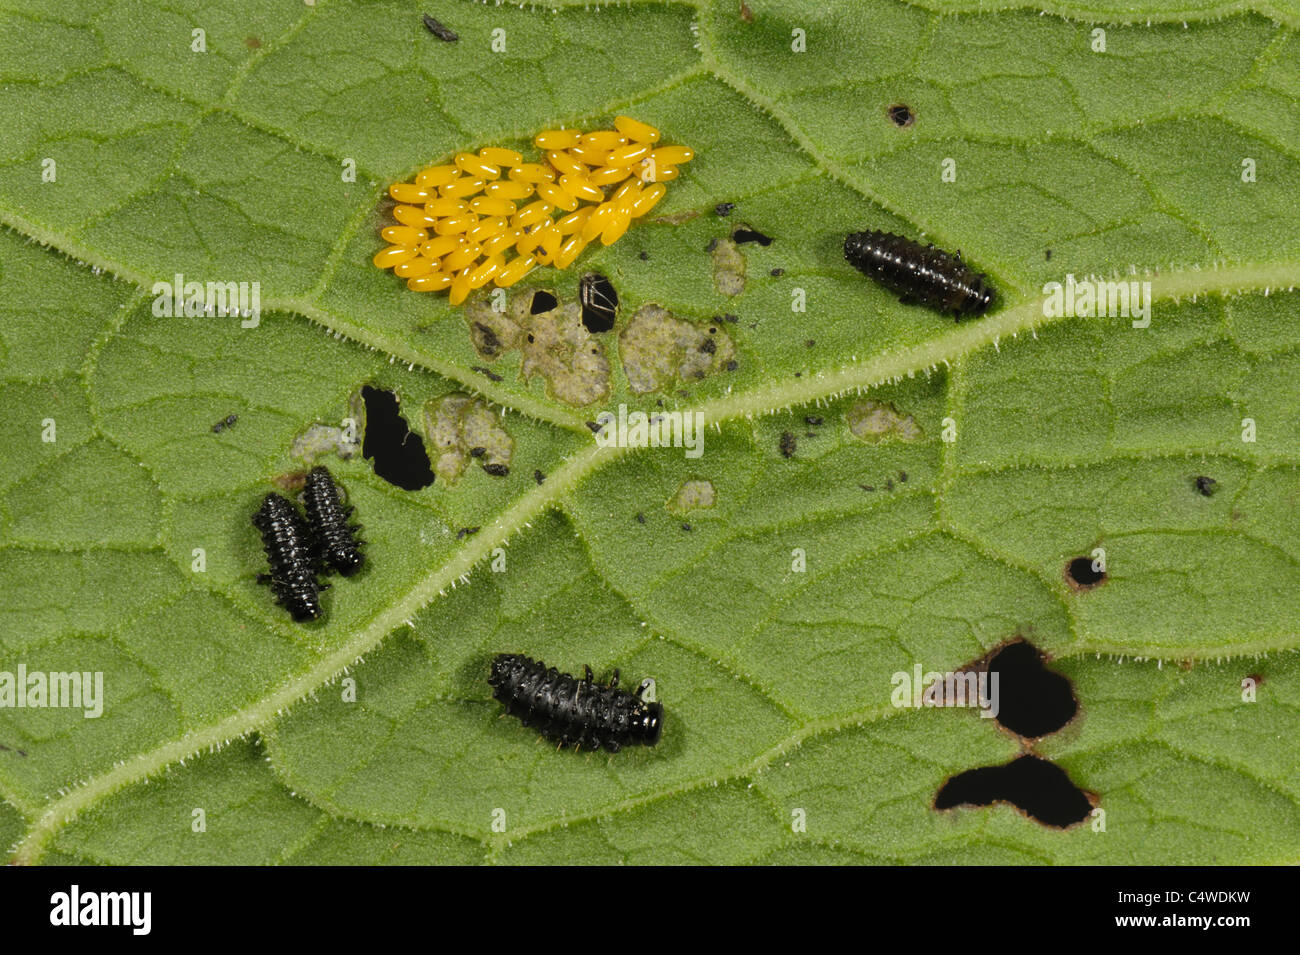 The first stage: eggs and larvae - Stagbeetle.info - Information ...